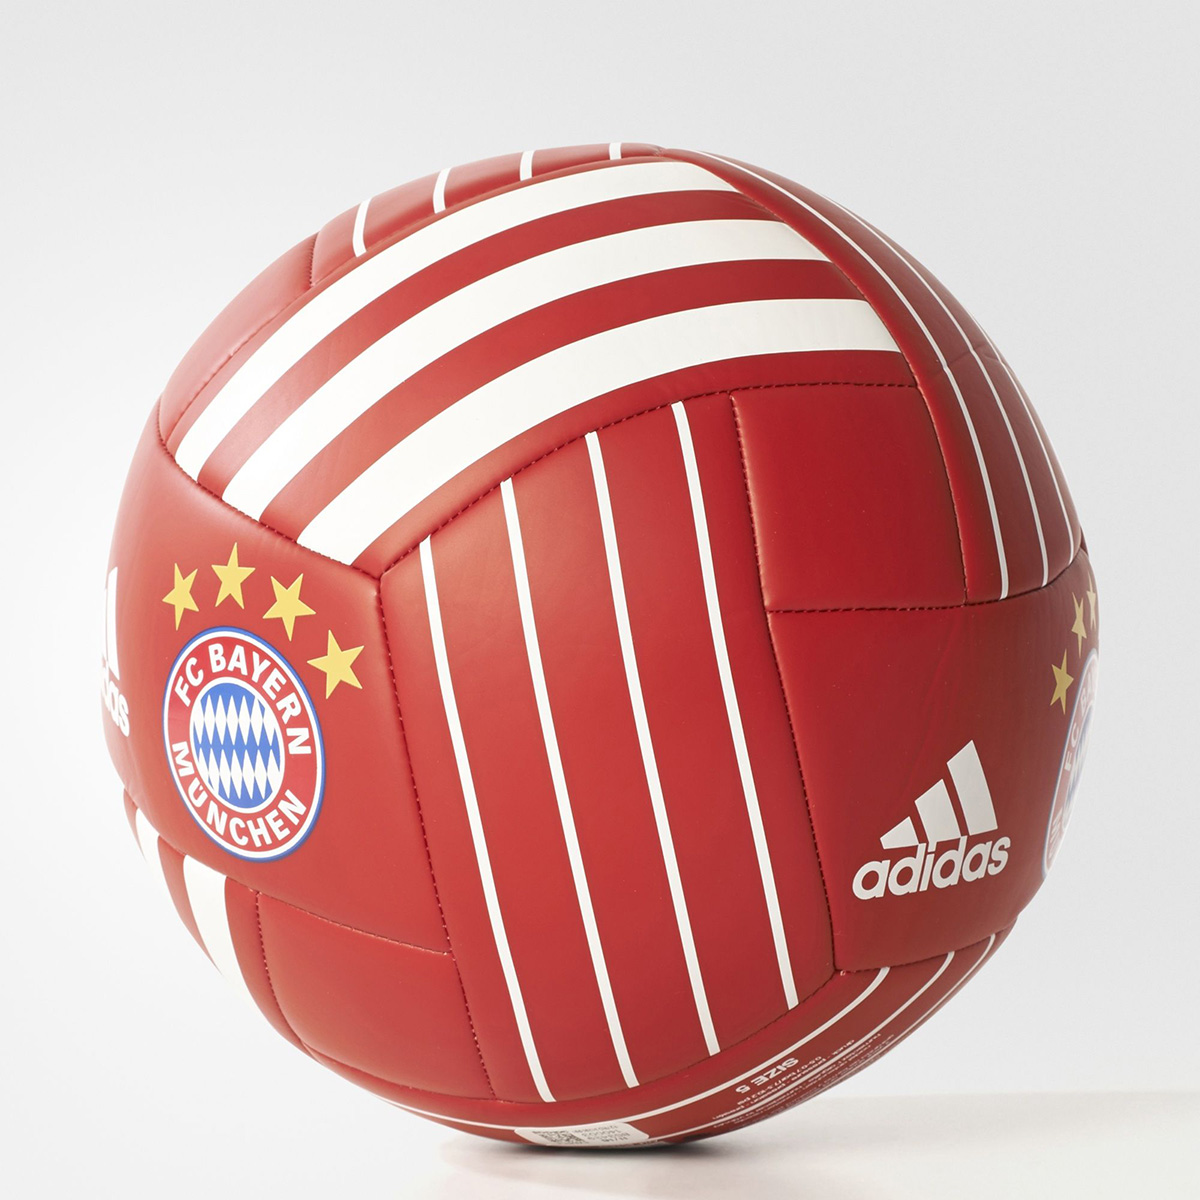 adidas fc bayern munich soccer ball soccer merchandise. Black Bedroom Furniture Sets. Home Design Ideas